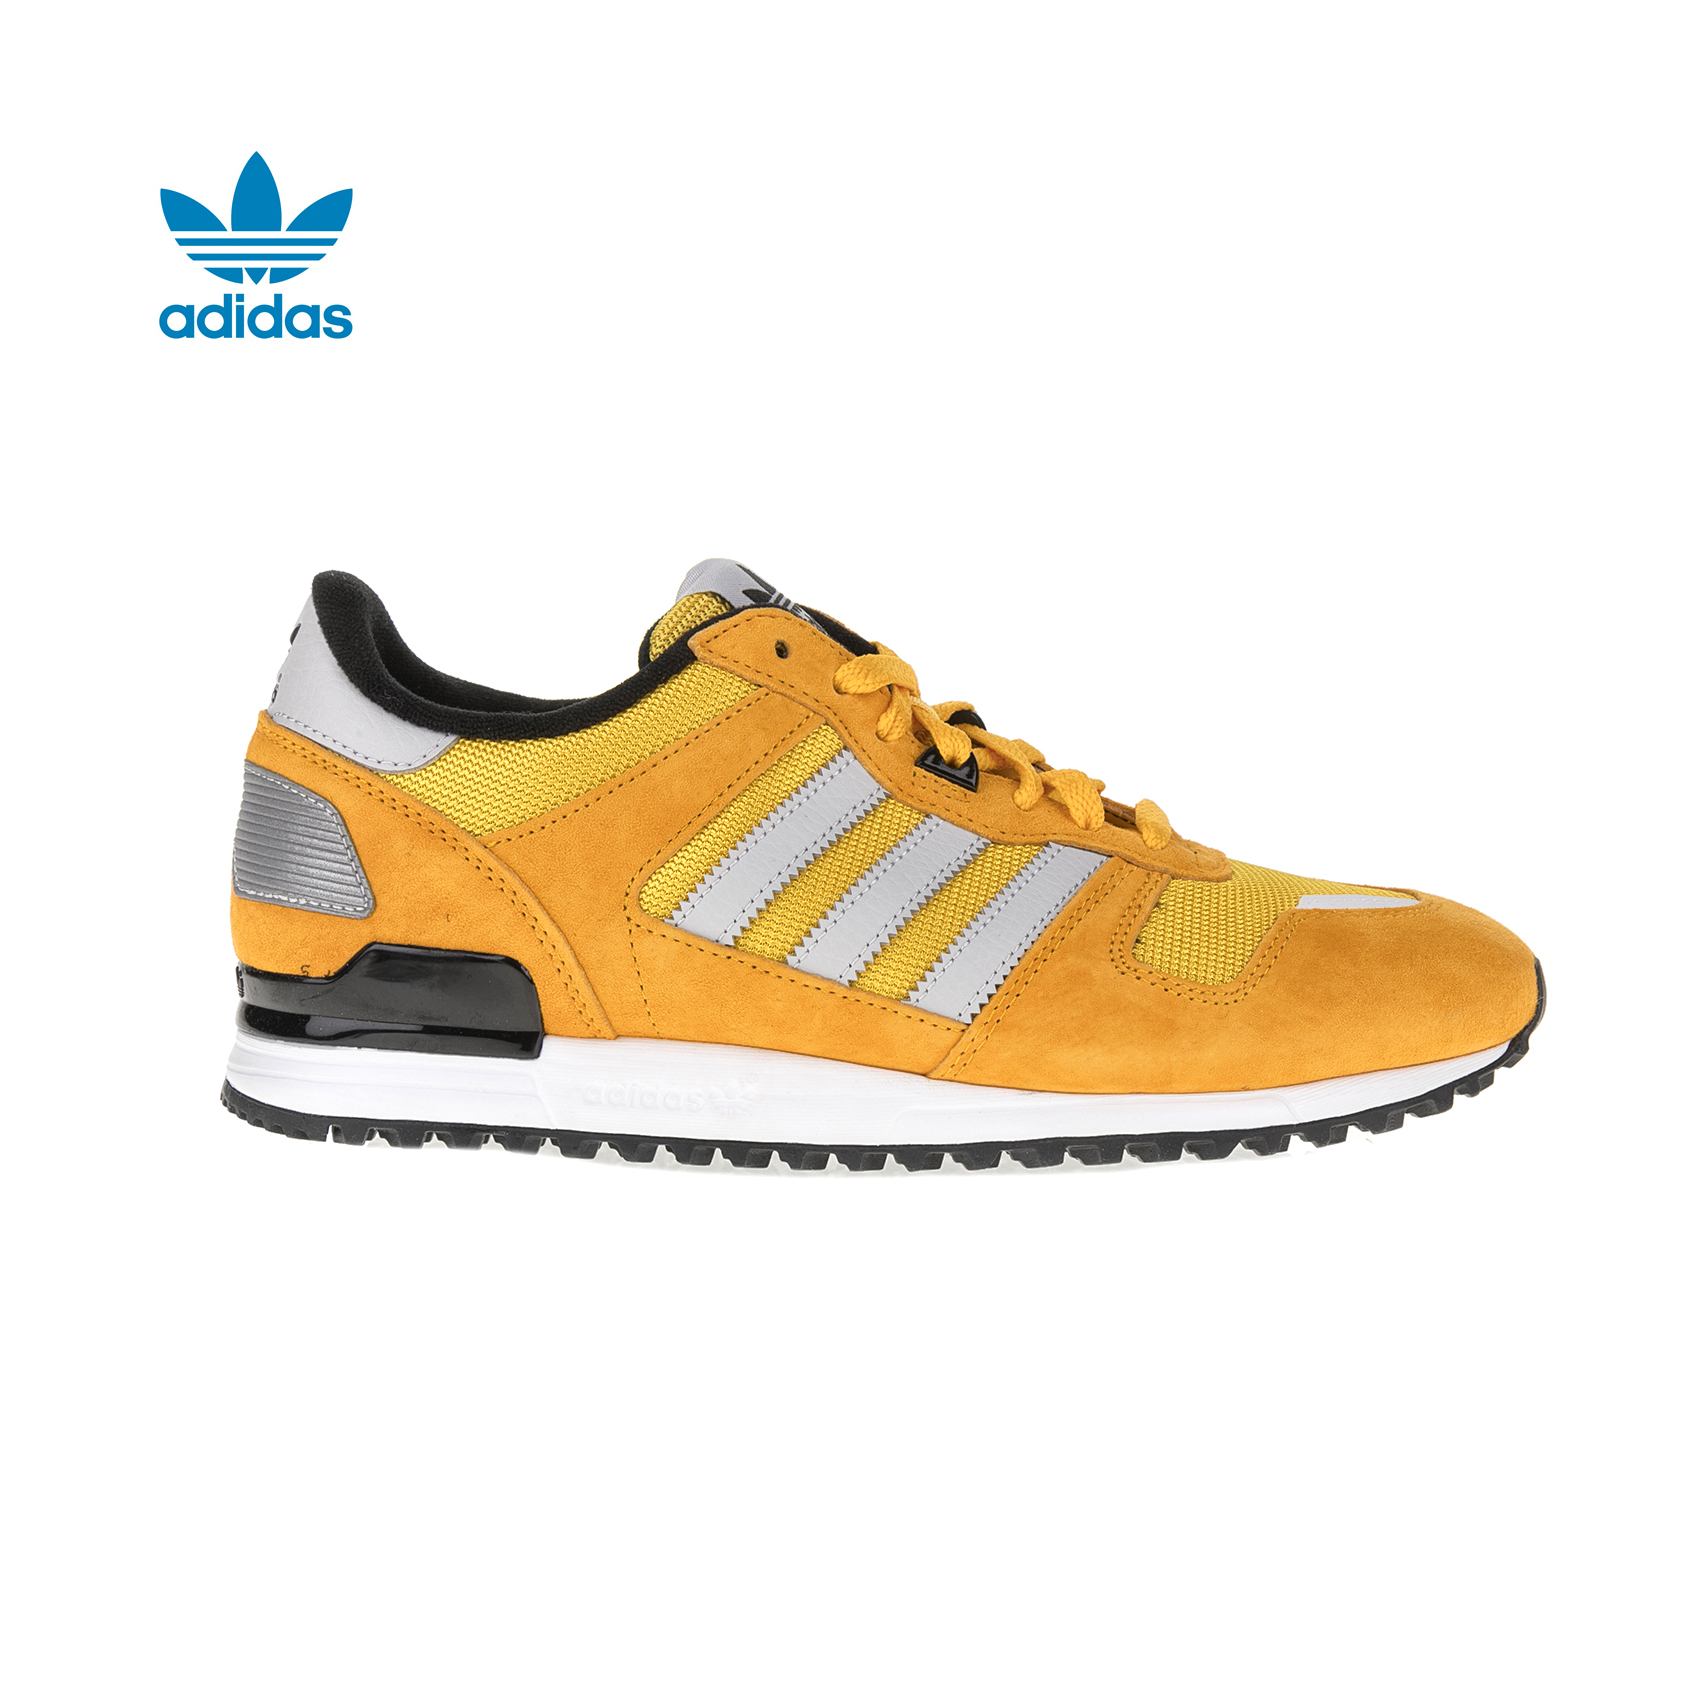 adidas Originals – Ανδρικά sneakers adidas ZX 700 κίτρινα